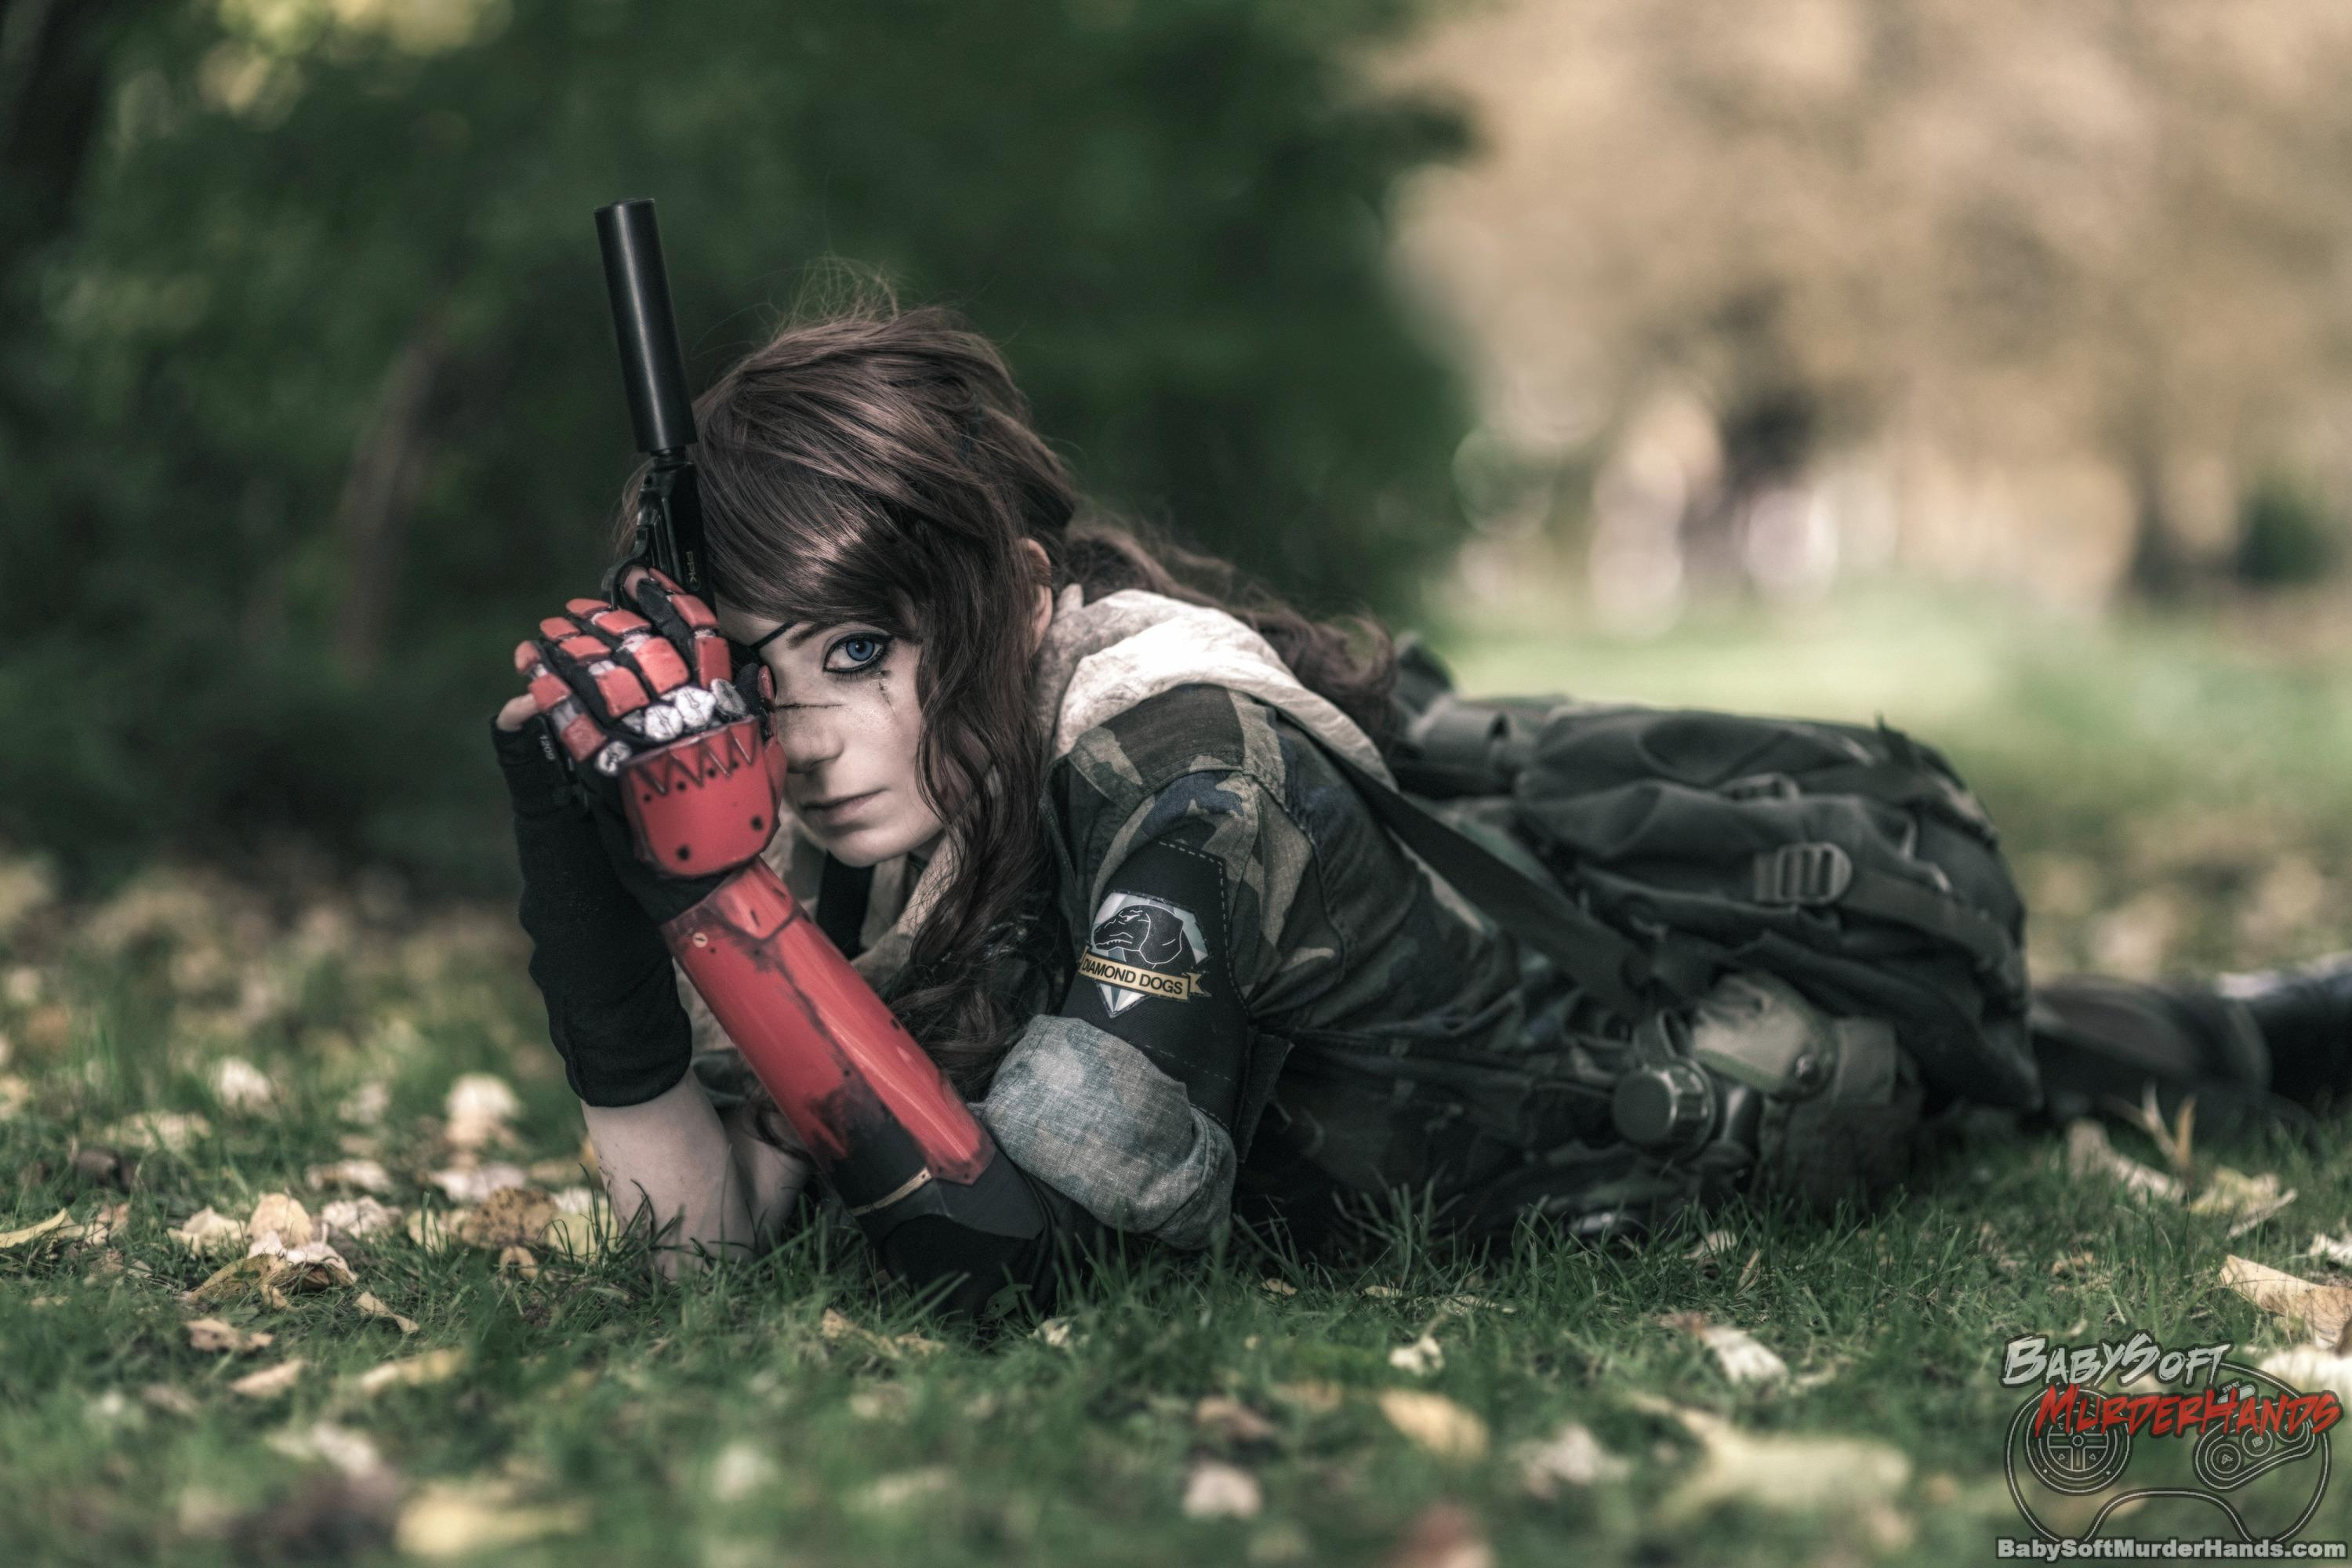 Punished/ Venom Snake from METAL GEAR SOLID cosplay by AnnYAnarchY